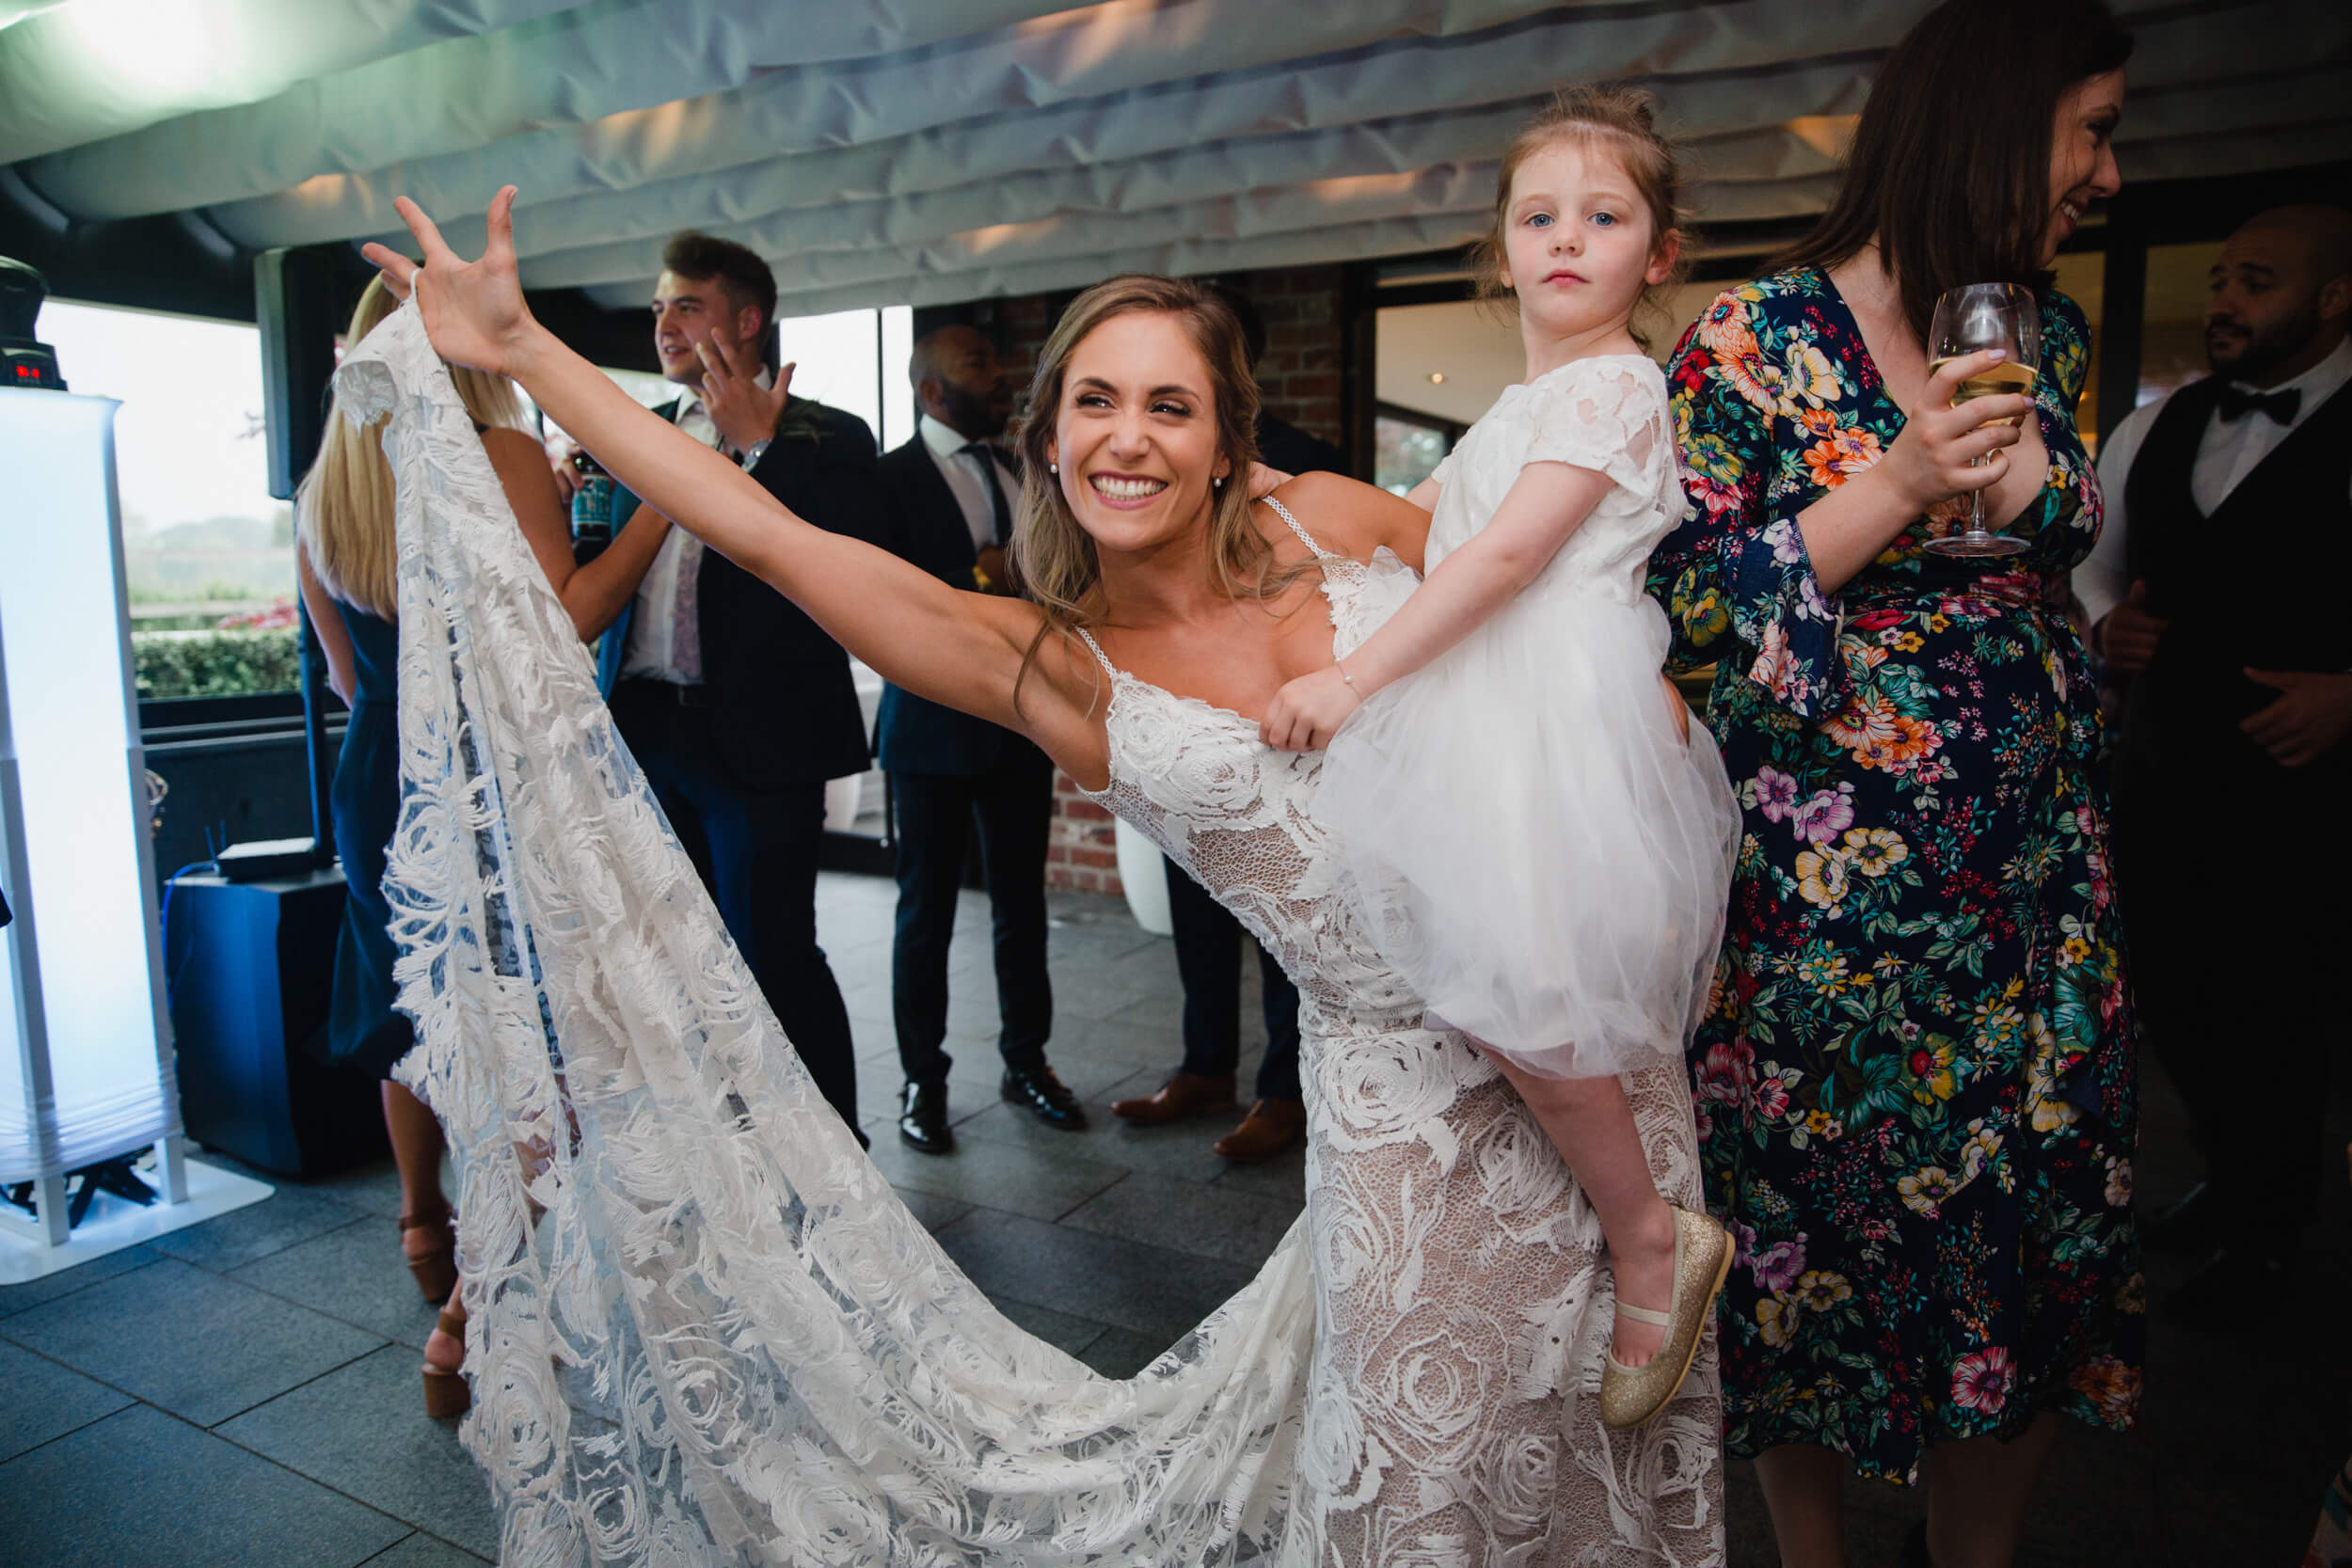 bride holding flower girl lifting wedding dress up off the dance floor